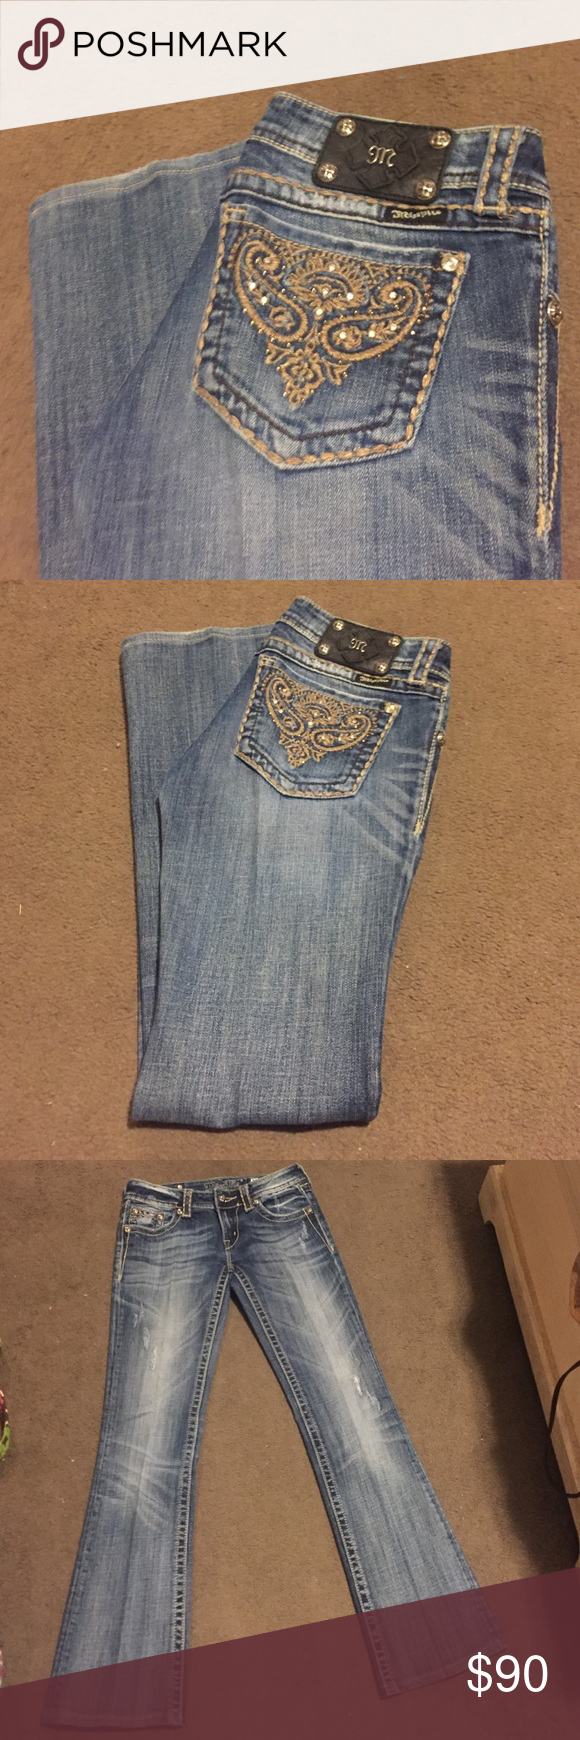 Miss Me Bootcut Jeans Size 28. | Bootcut. | 31.25 inch inseam. | Worn twice. | Excellent condition! Miss Me Jeans Boot Cut